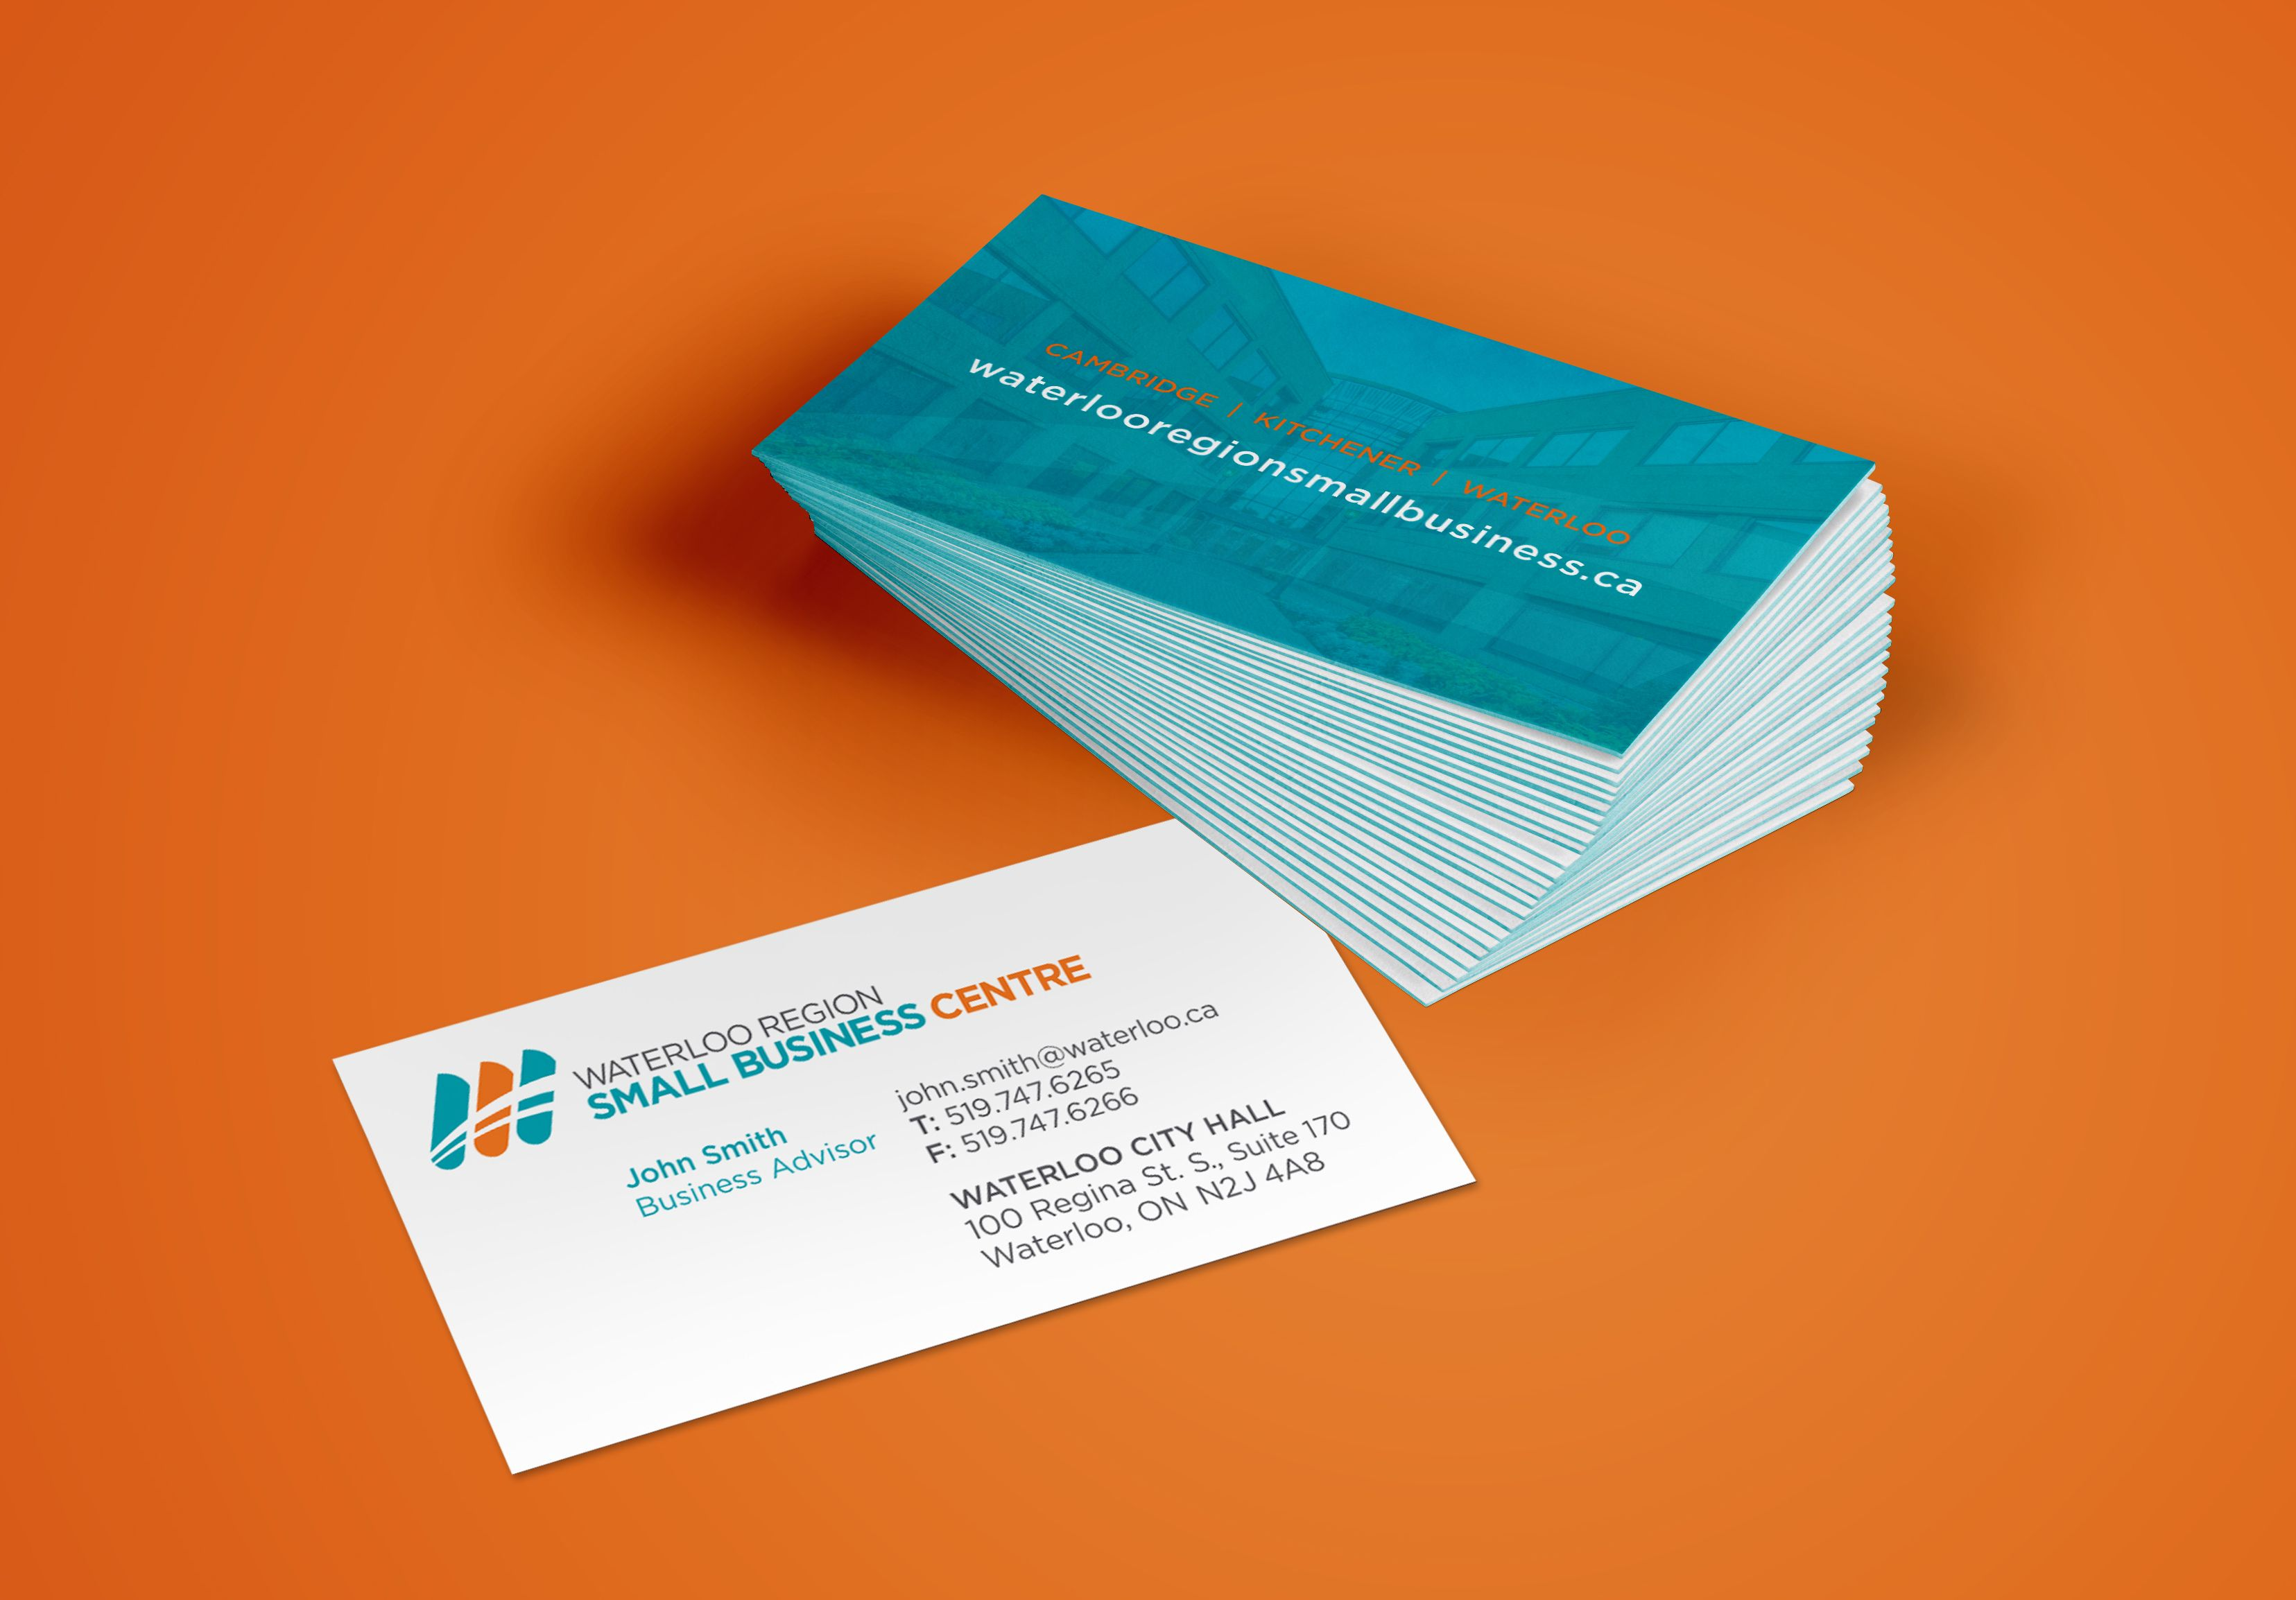 Waterloo Region Small Business Centre | Business Cards #cards #card ...